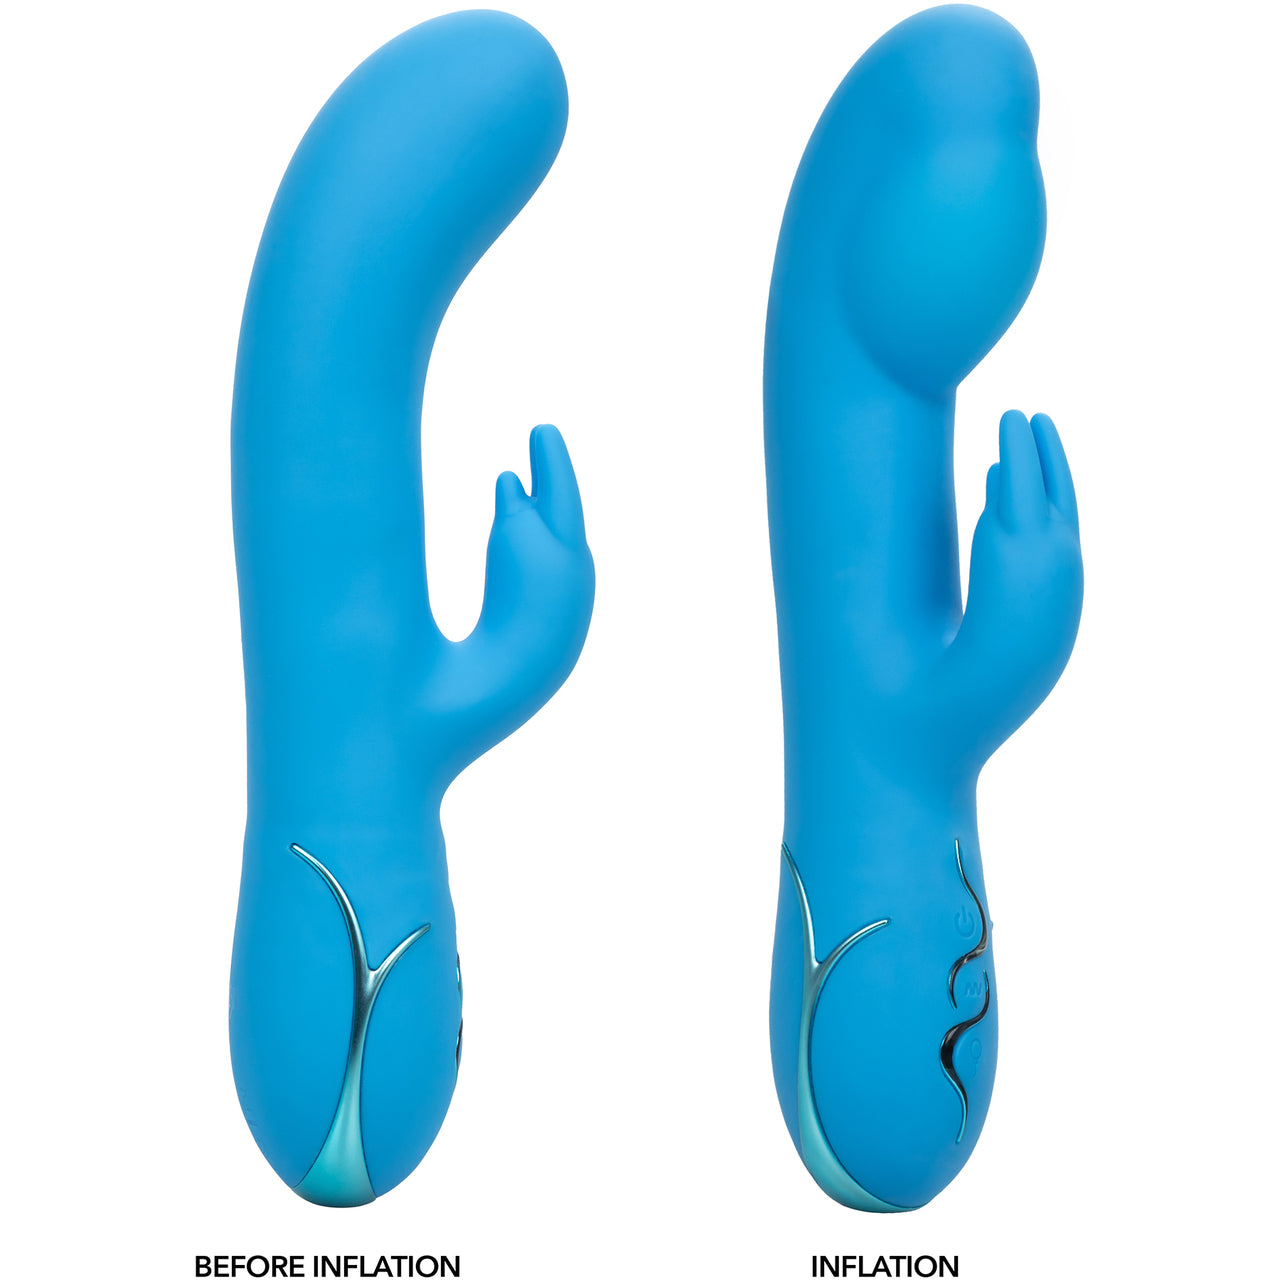 Insatiable G Inflatable G-Bunny Rabbit Style Silicone Rechargeable Vibrator, Blue by CalExotics